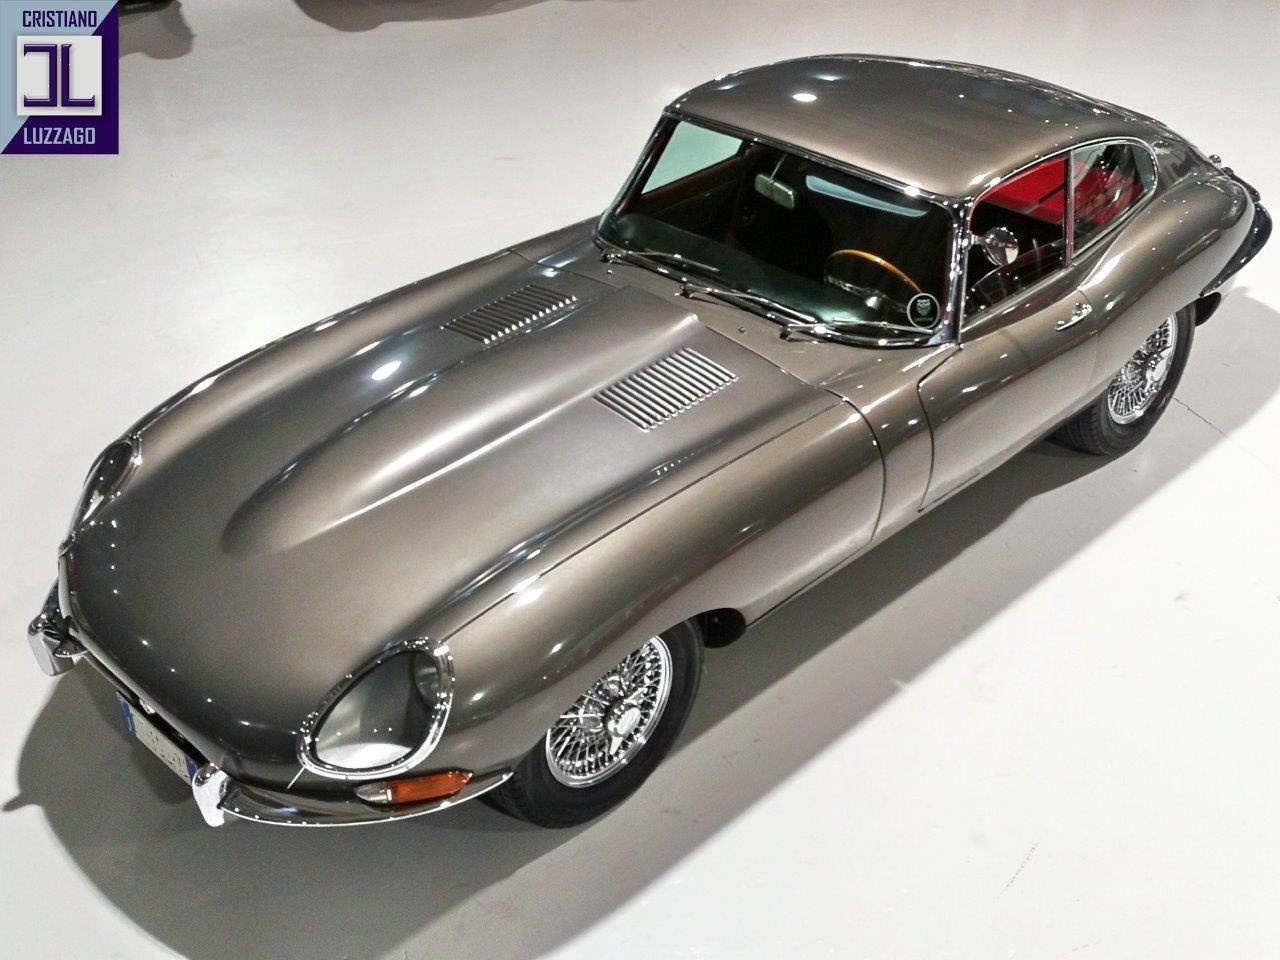 1964 JAGUAR E TYPE 3.8 S1 FHC TOTALLY RESTORED SOLD (picture 1 of 6)